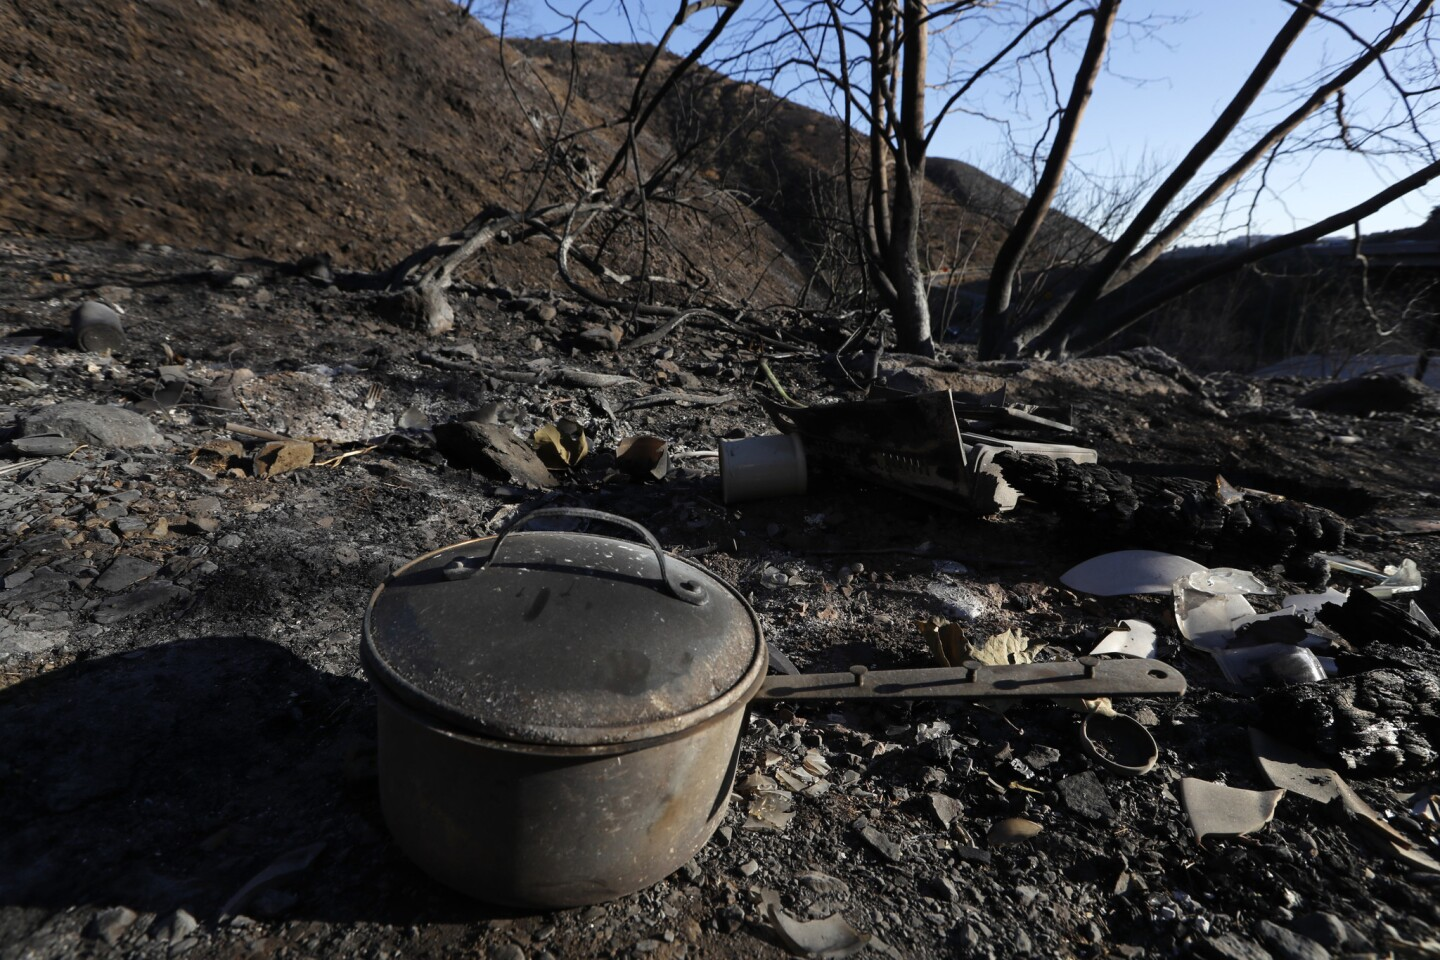 A scorched pot is among the few remnants of a homeless site where investigators believe the Skirball blaze, which destroyed more than 400 acres, started.